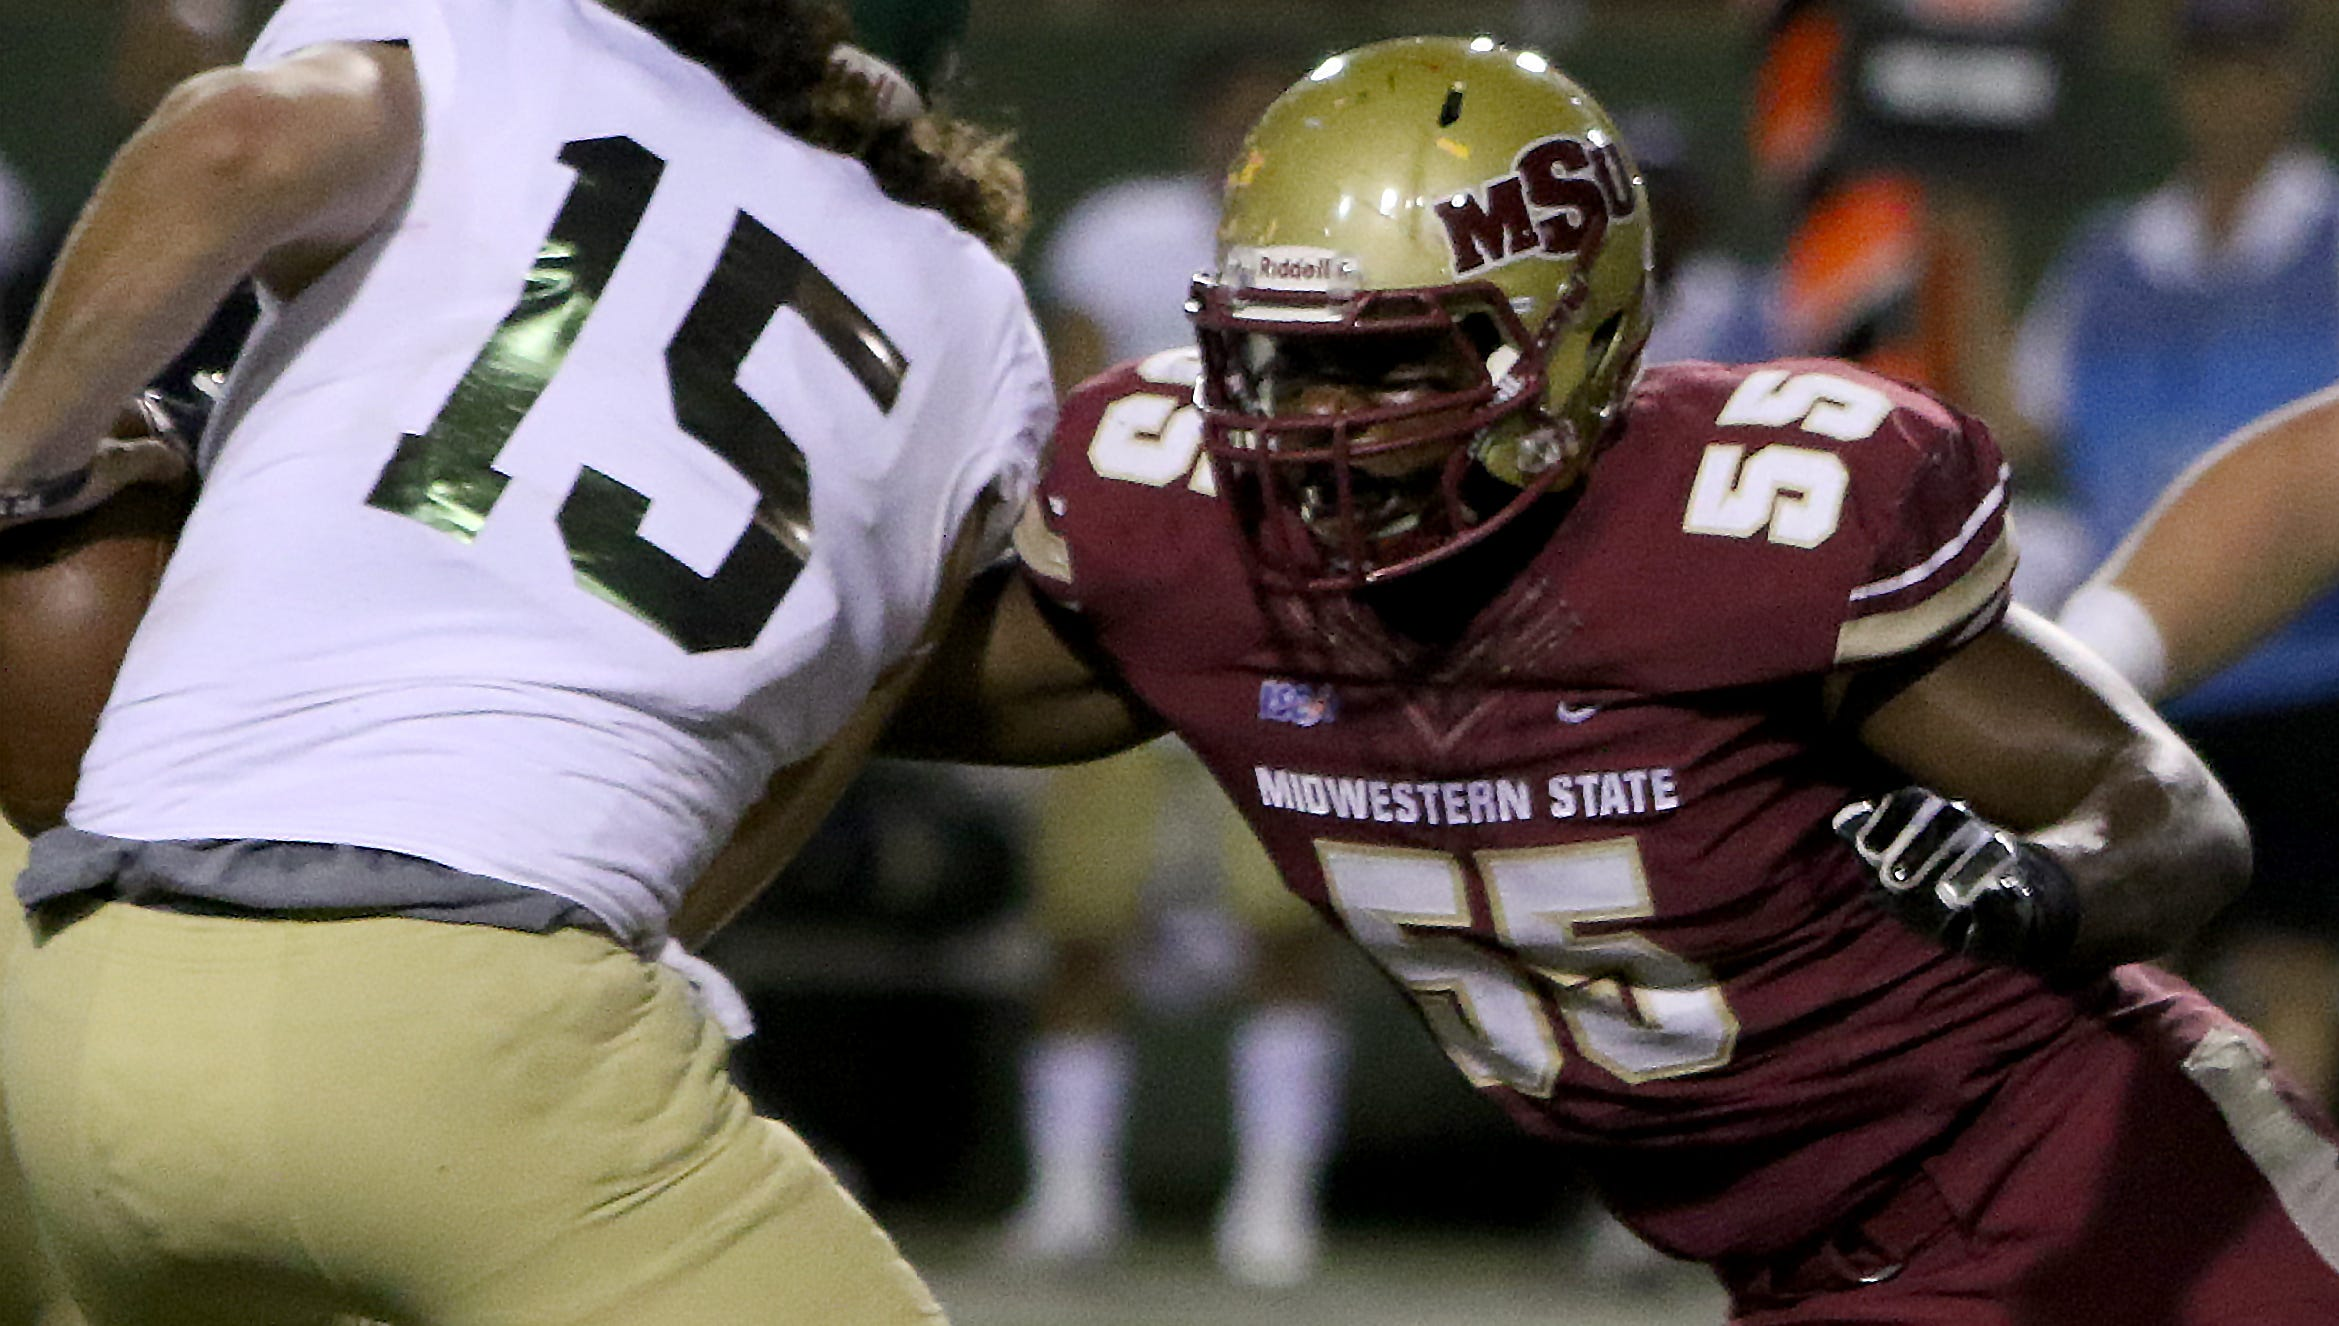 Midwestern State's Melik Owens sacks Humboldt State's Joey Sweeney Saturday, Sept. 1, 2018, at Memorial Stadium. The Mustangs defeated the Jacks 55-12 to open the season.